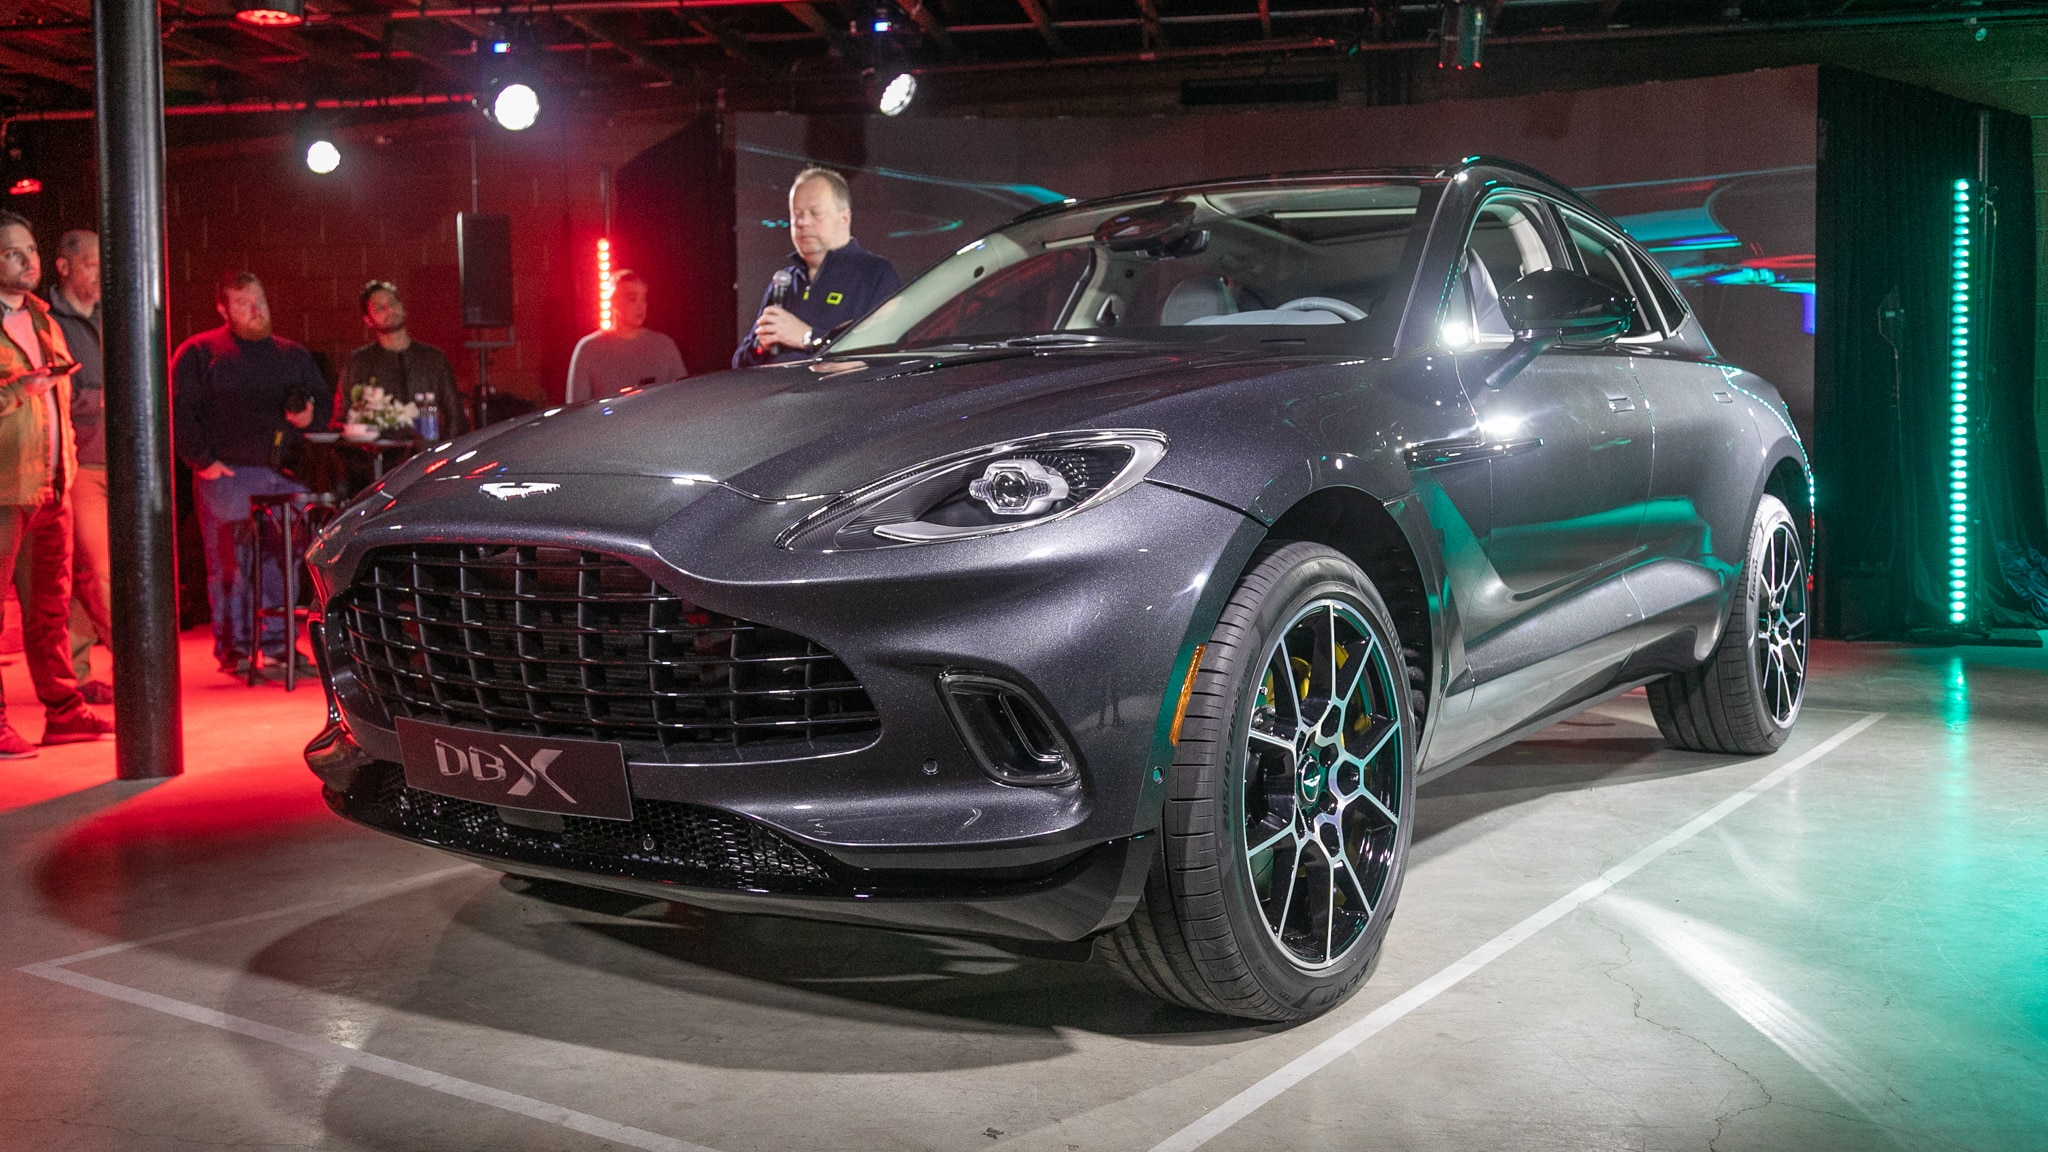 Ford Hybrid Suv >> 2021 Aston Martin DBX SUV First Look: Price, Specs, and ...